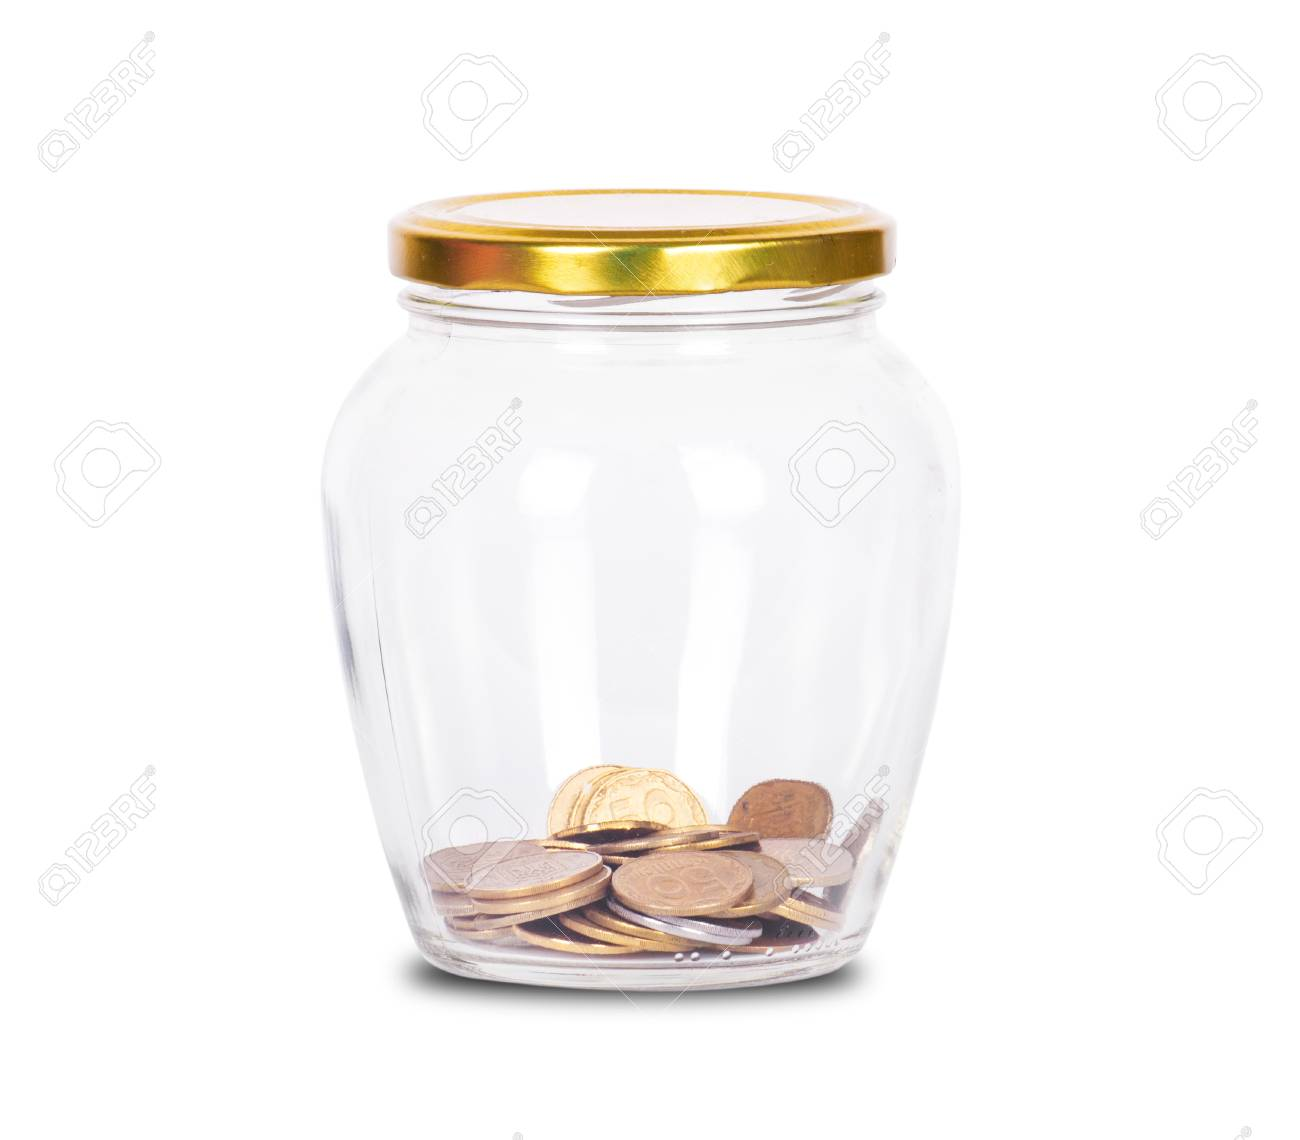 Coins in glass money jar, on white background - 50175304